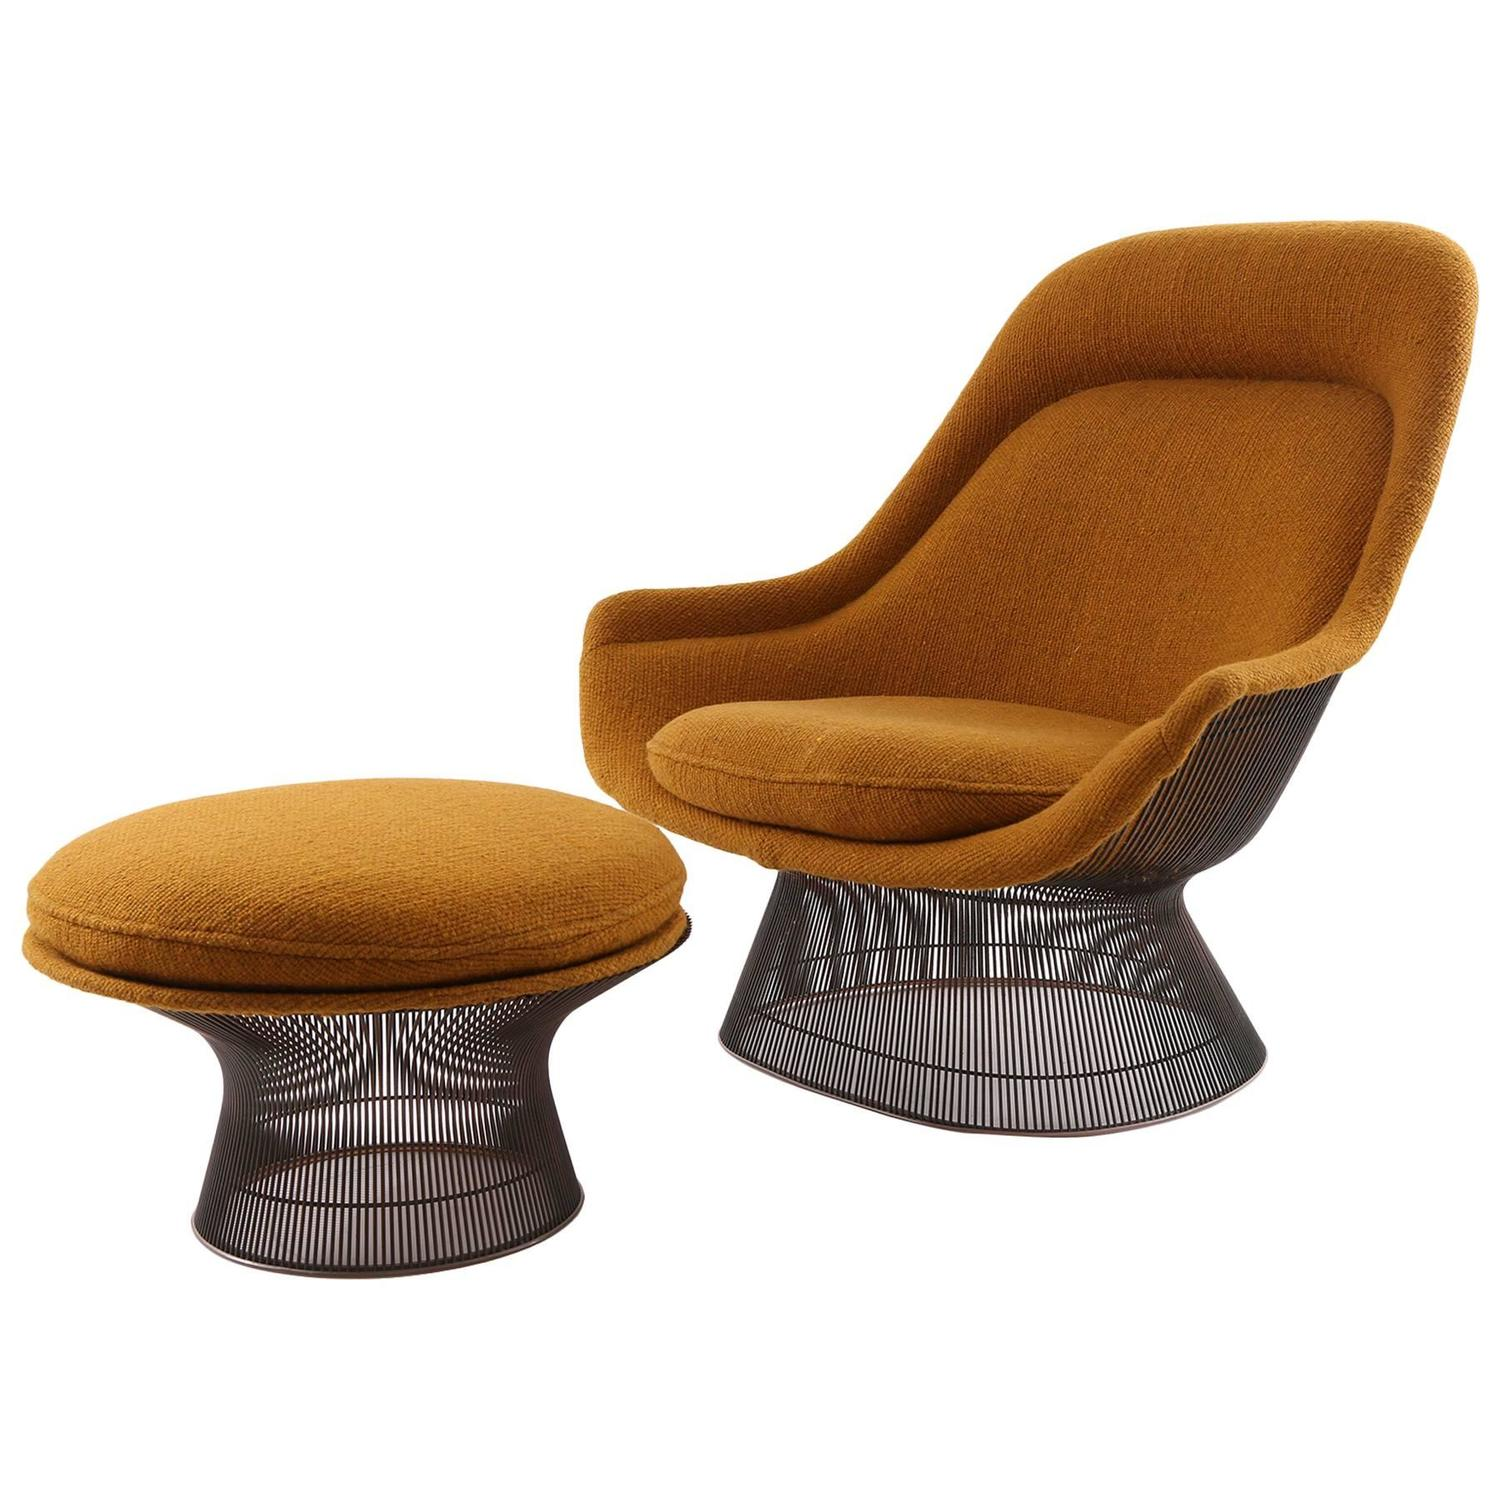 Warren Platner for Knoll Bronze Throne Chair and Ottoman at 1stdibs